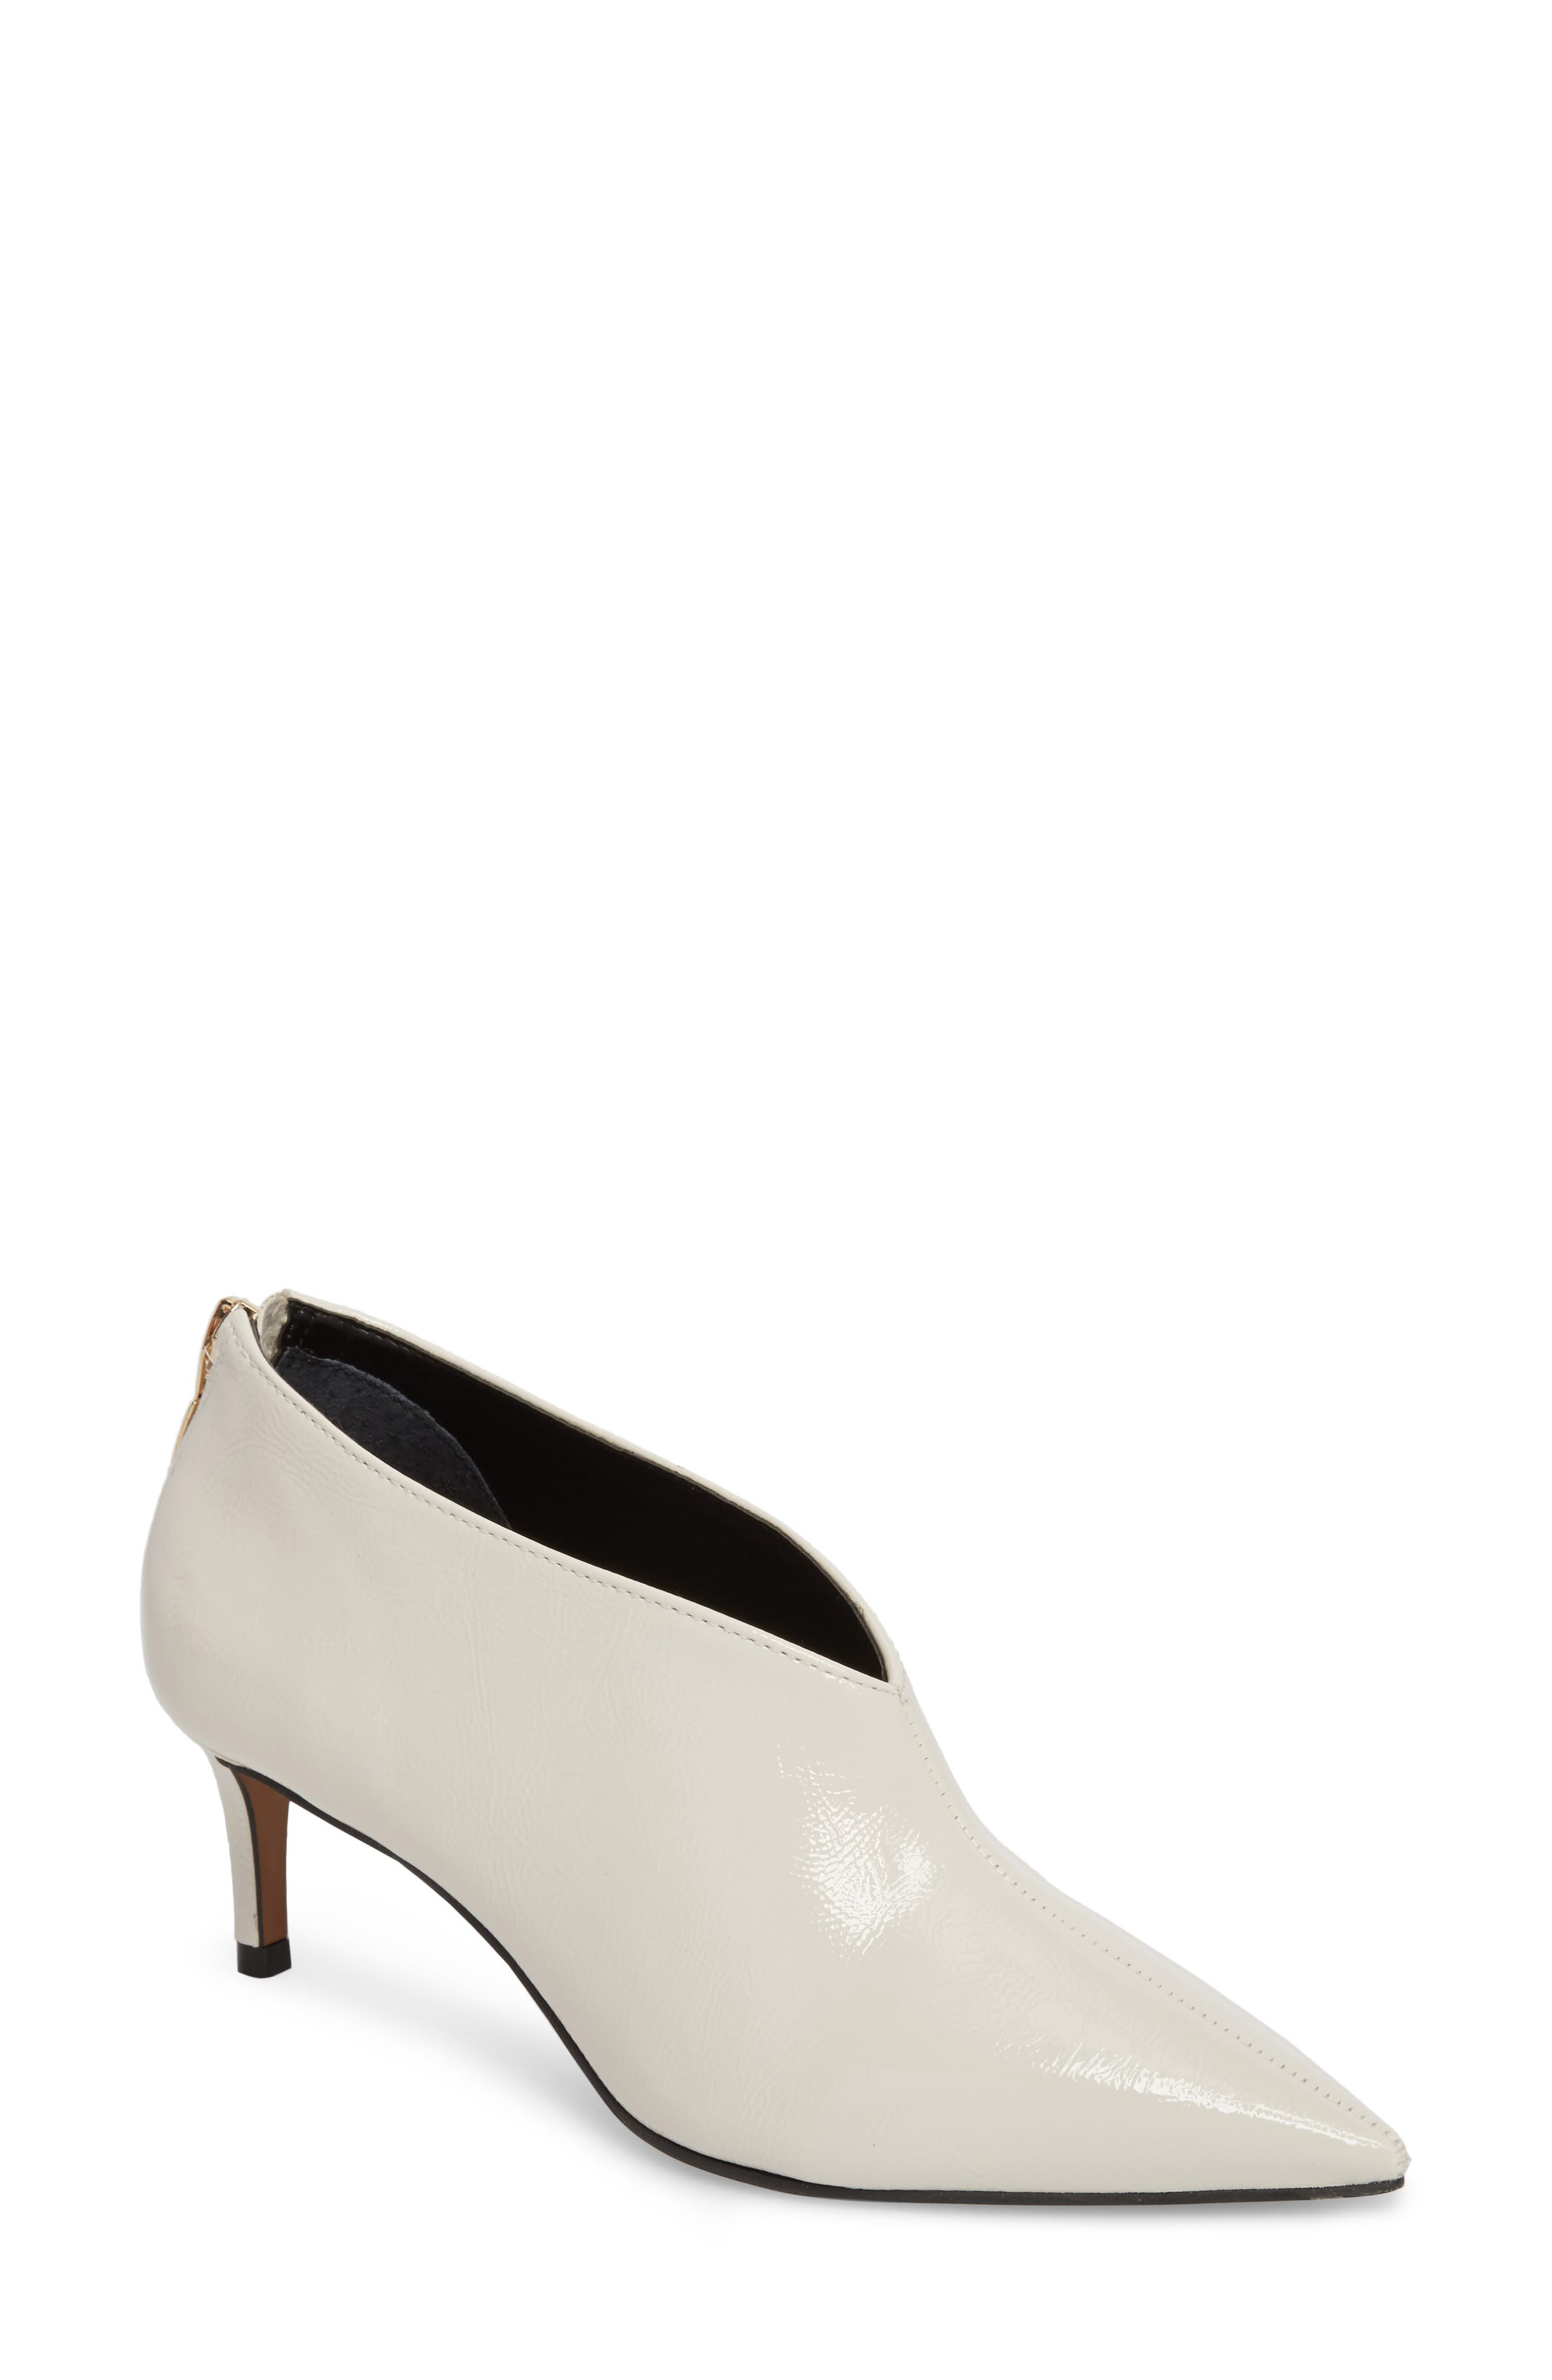 Alternate Image 1 Selected - Topshop Jamelia Vamp Bootie (Women)